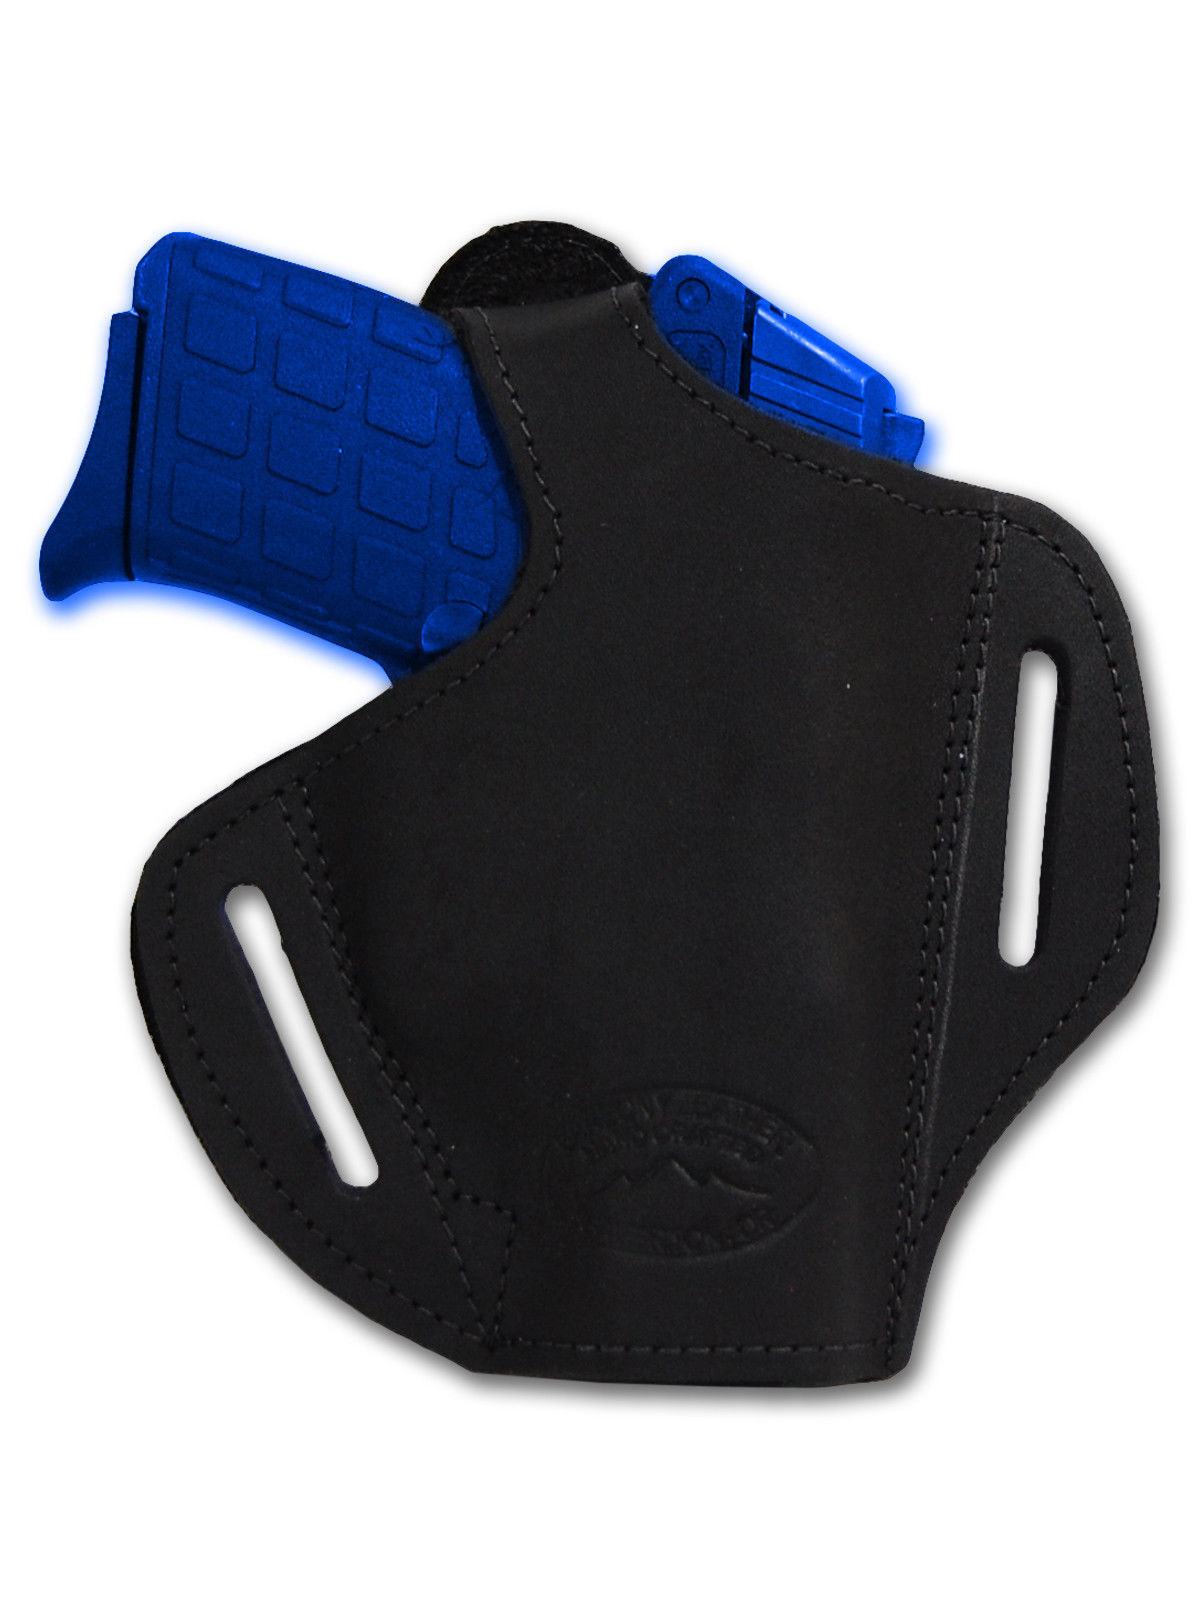 NEW Barsony Black Leather Pancake Holster+Dbl Mag Pouch Sig, Walther Comp 9mm 40